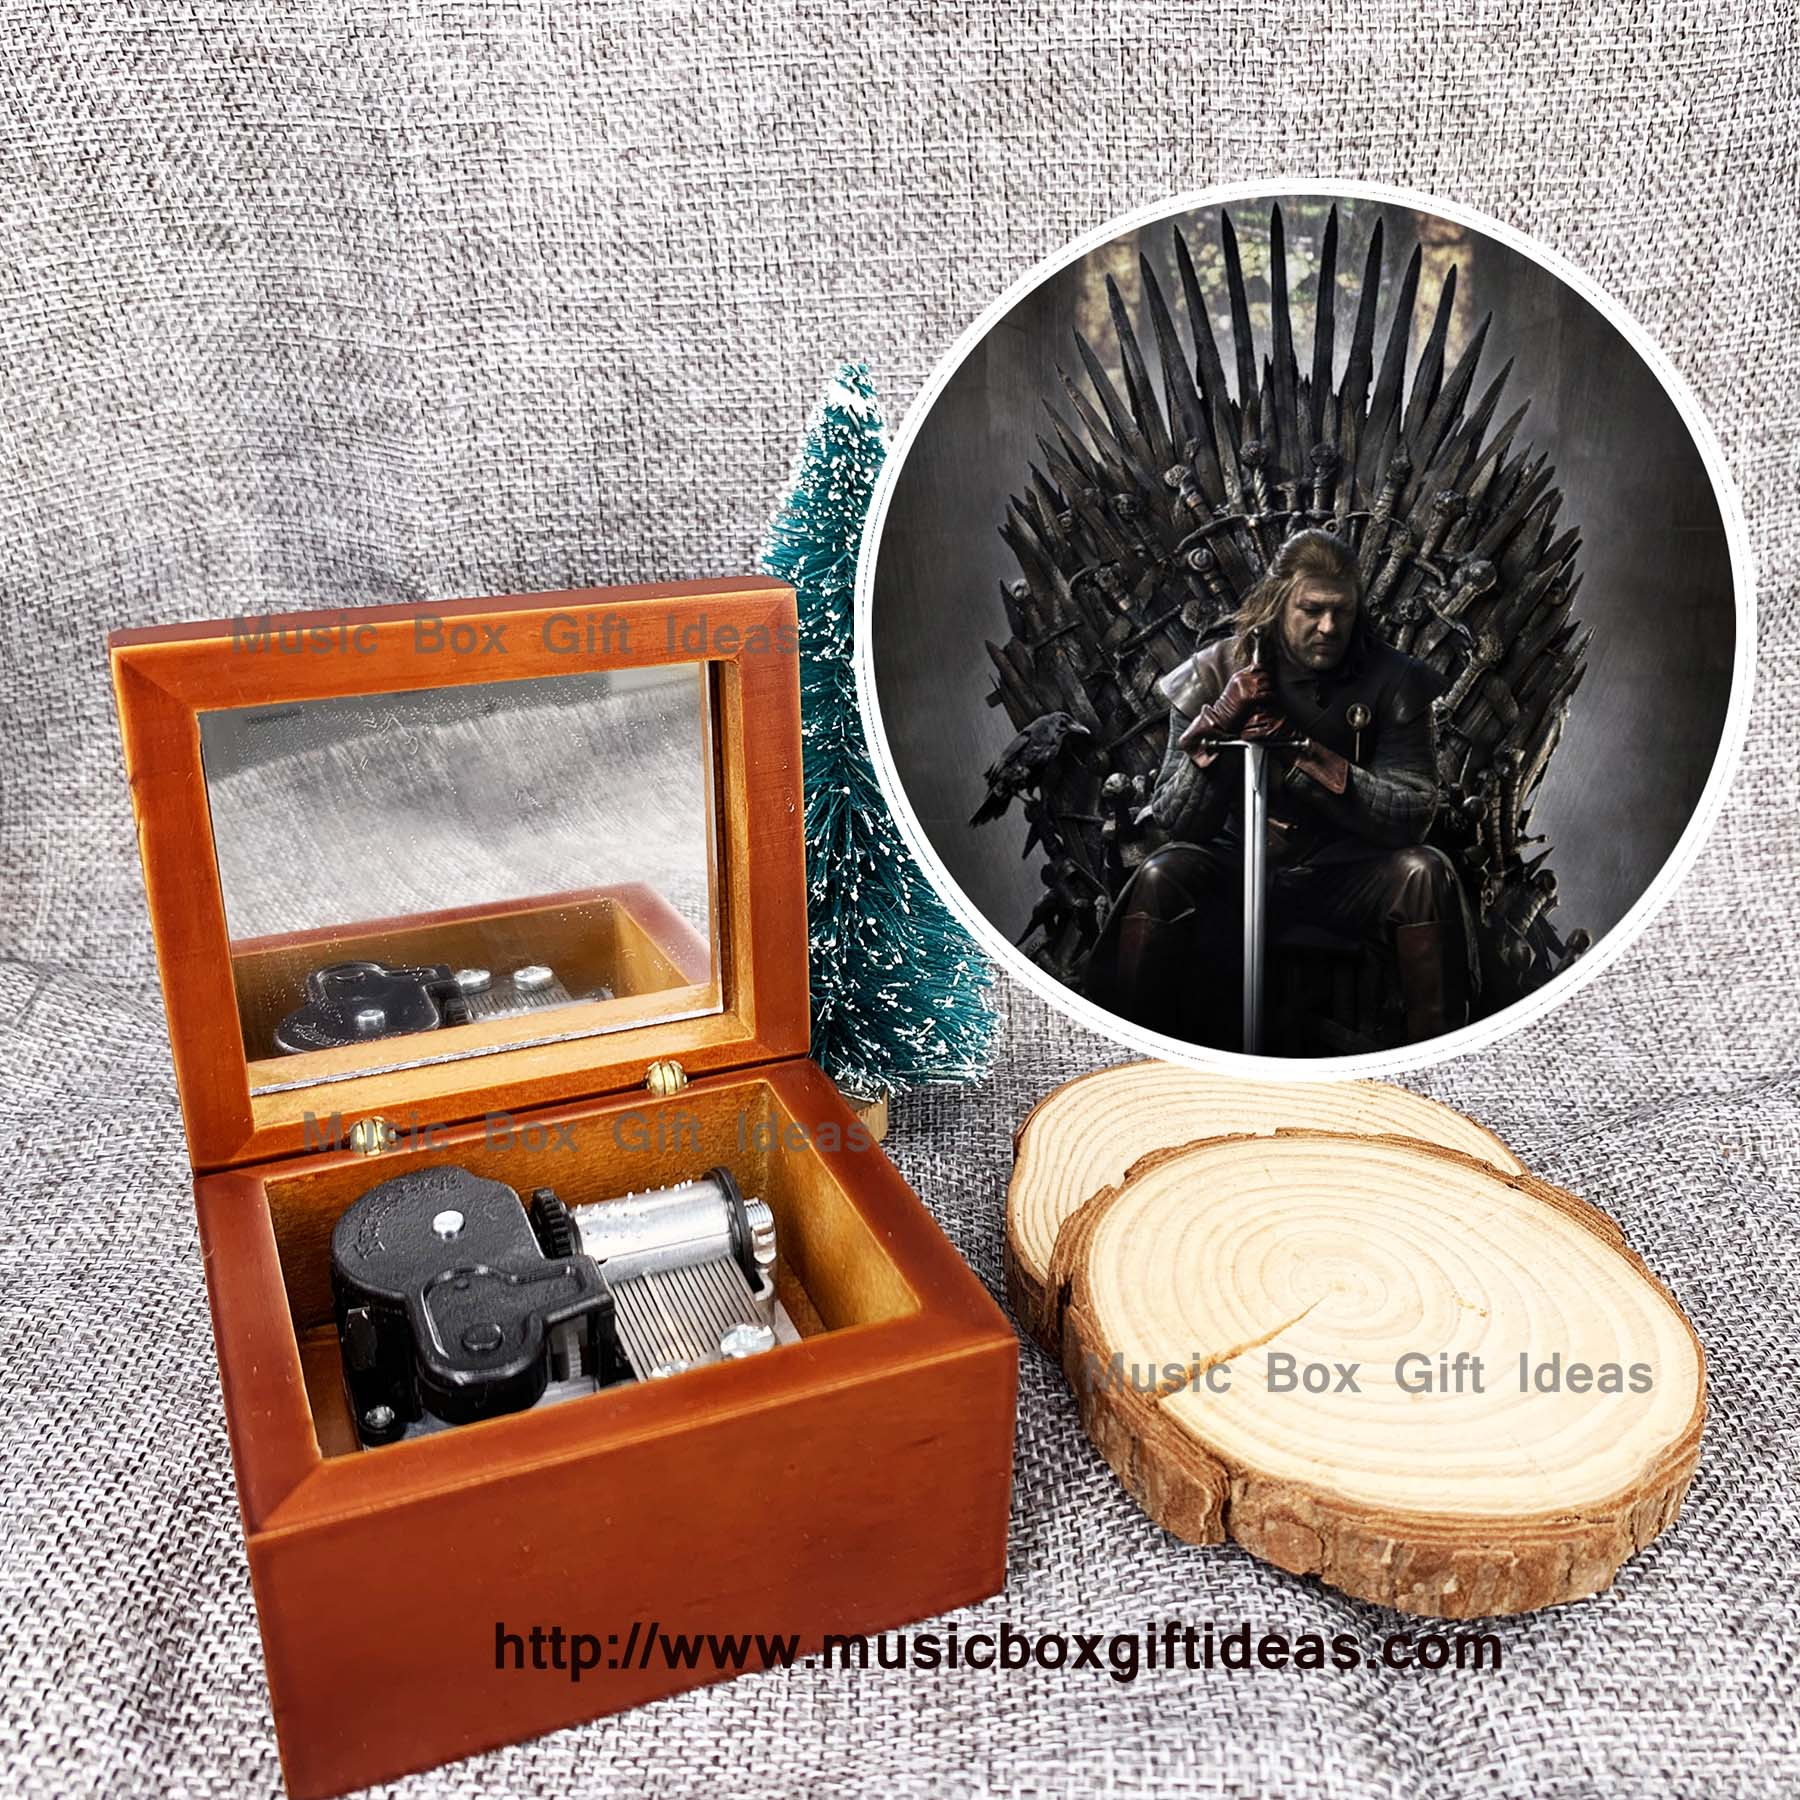 Game of Thrones Theme Song 18 Note Wooden Windup Music Box - Music Box Gift Ideas